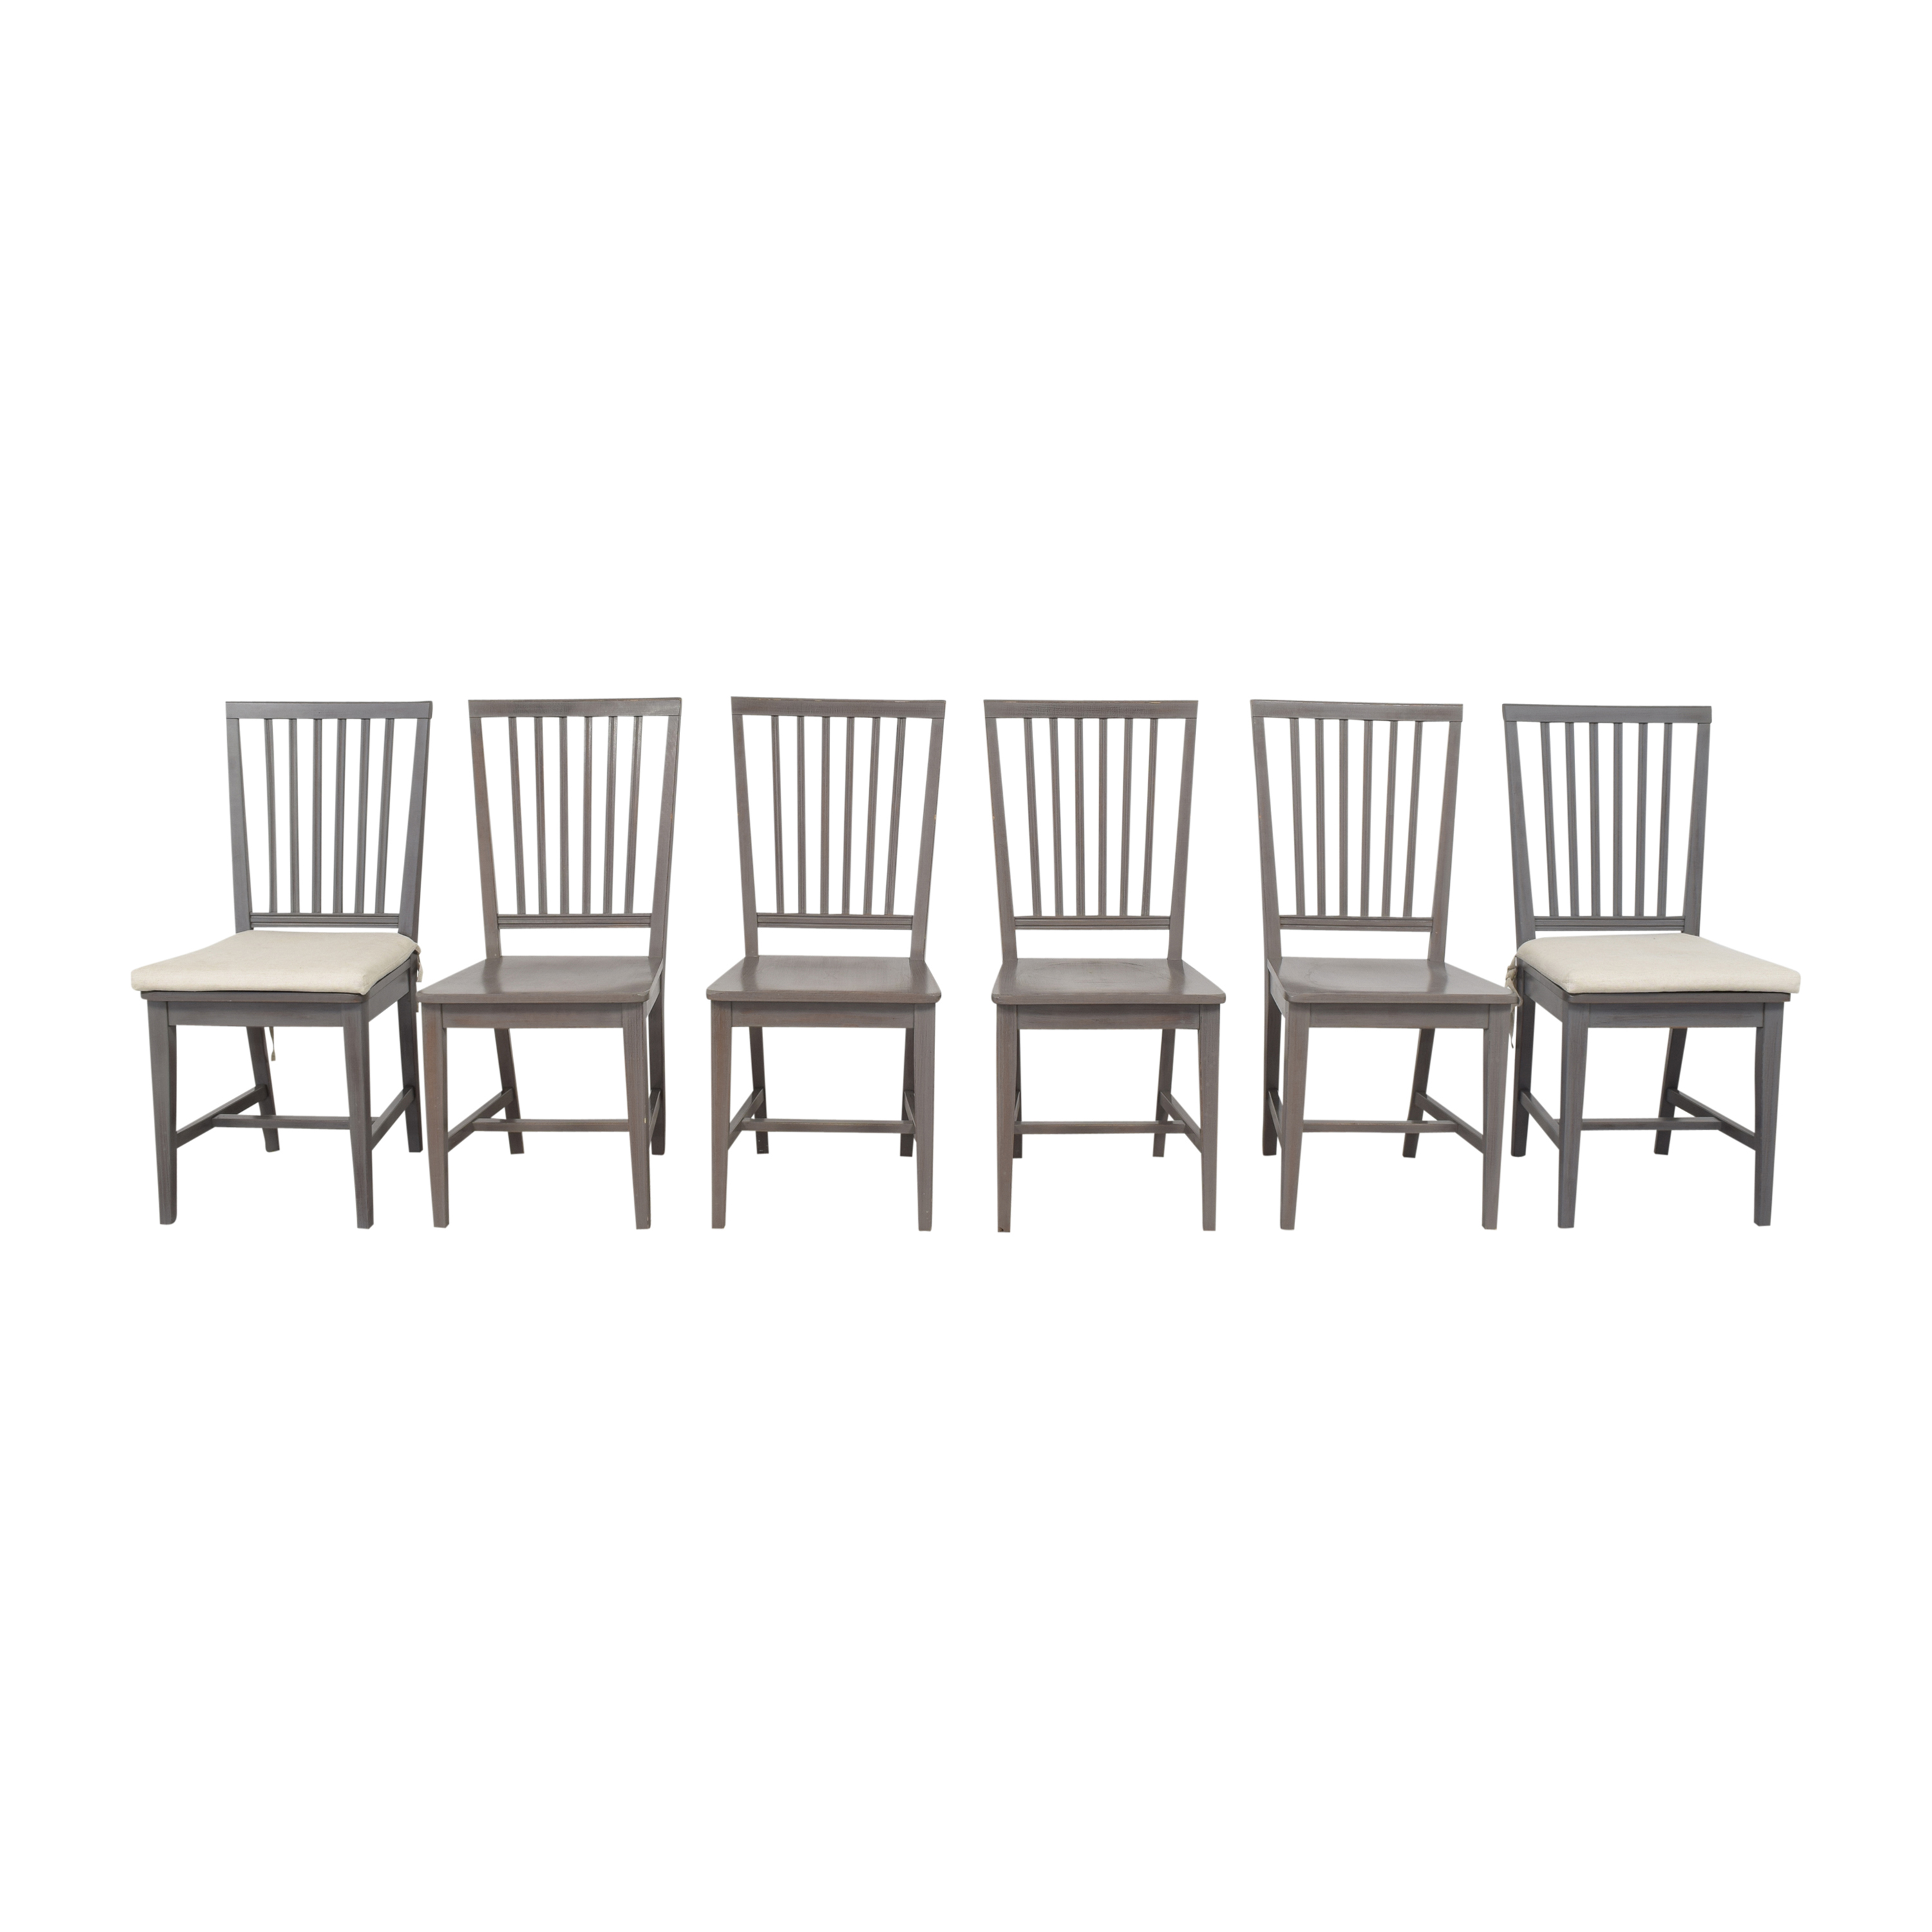 Crate & Barrel Crate & Barrel Village Dining Chairs